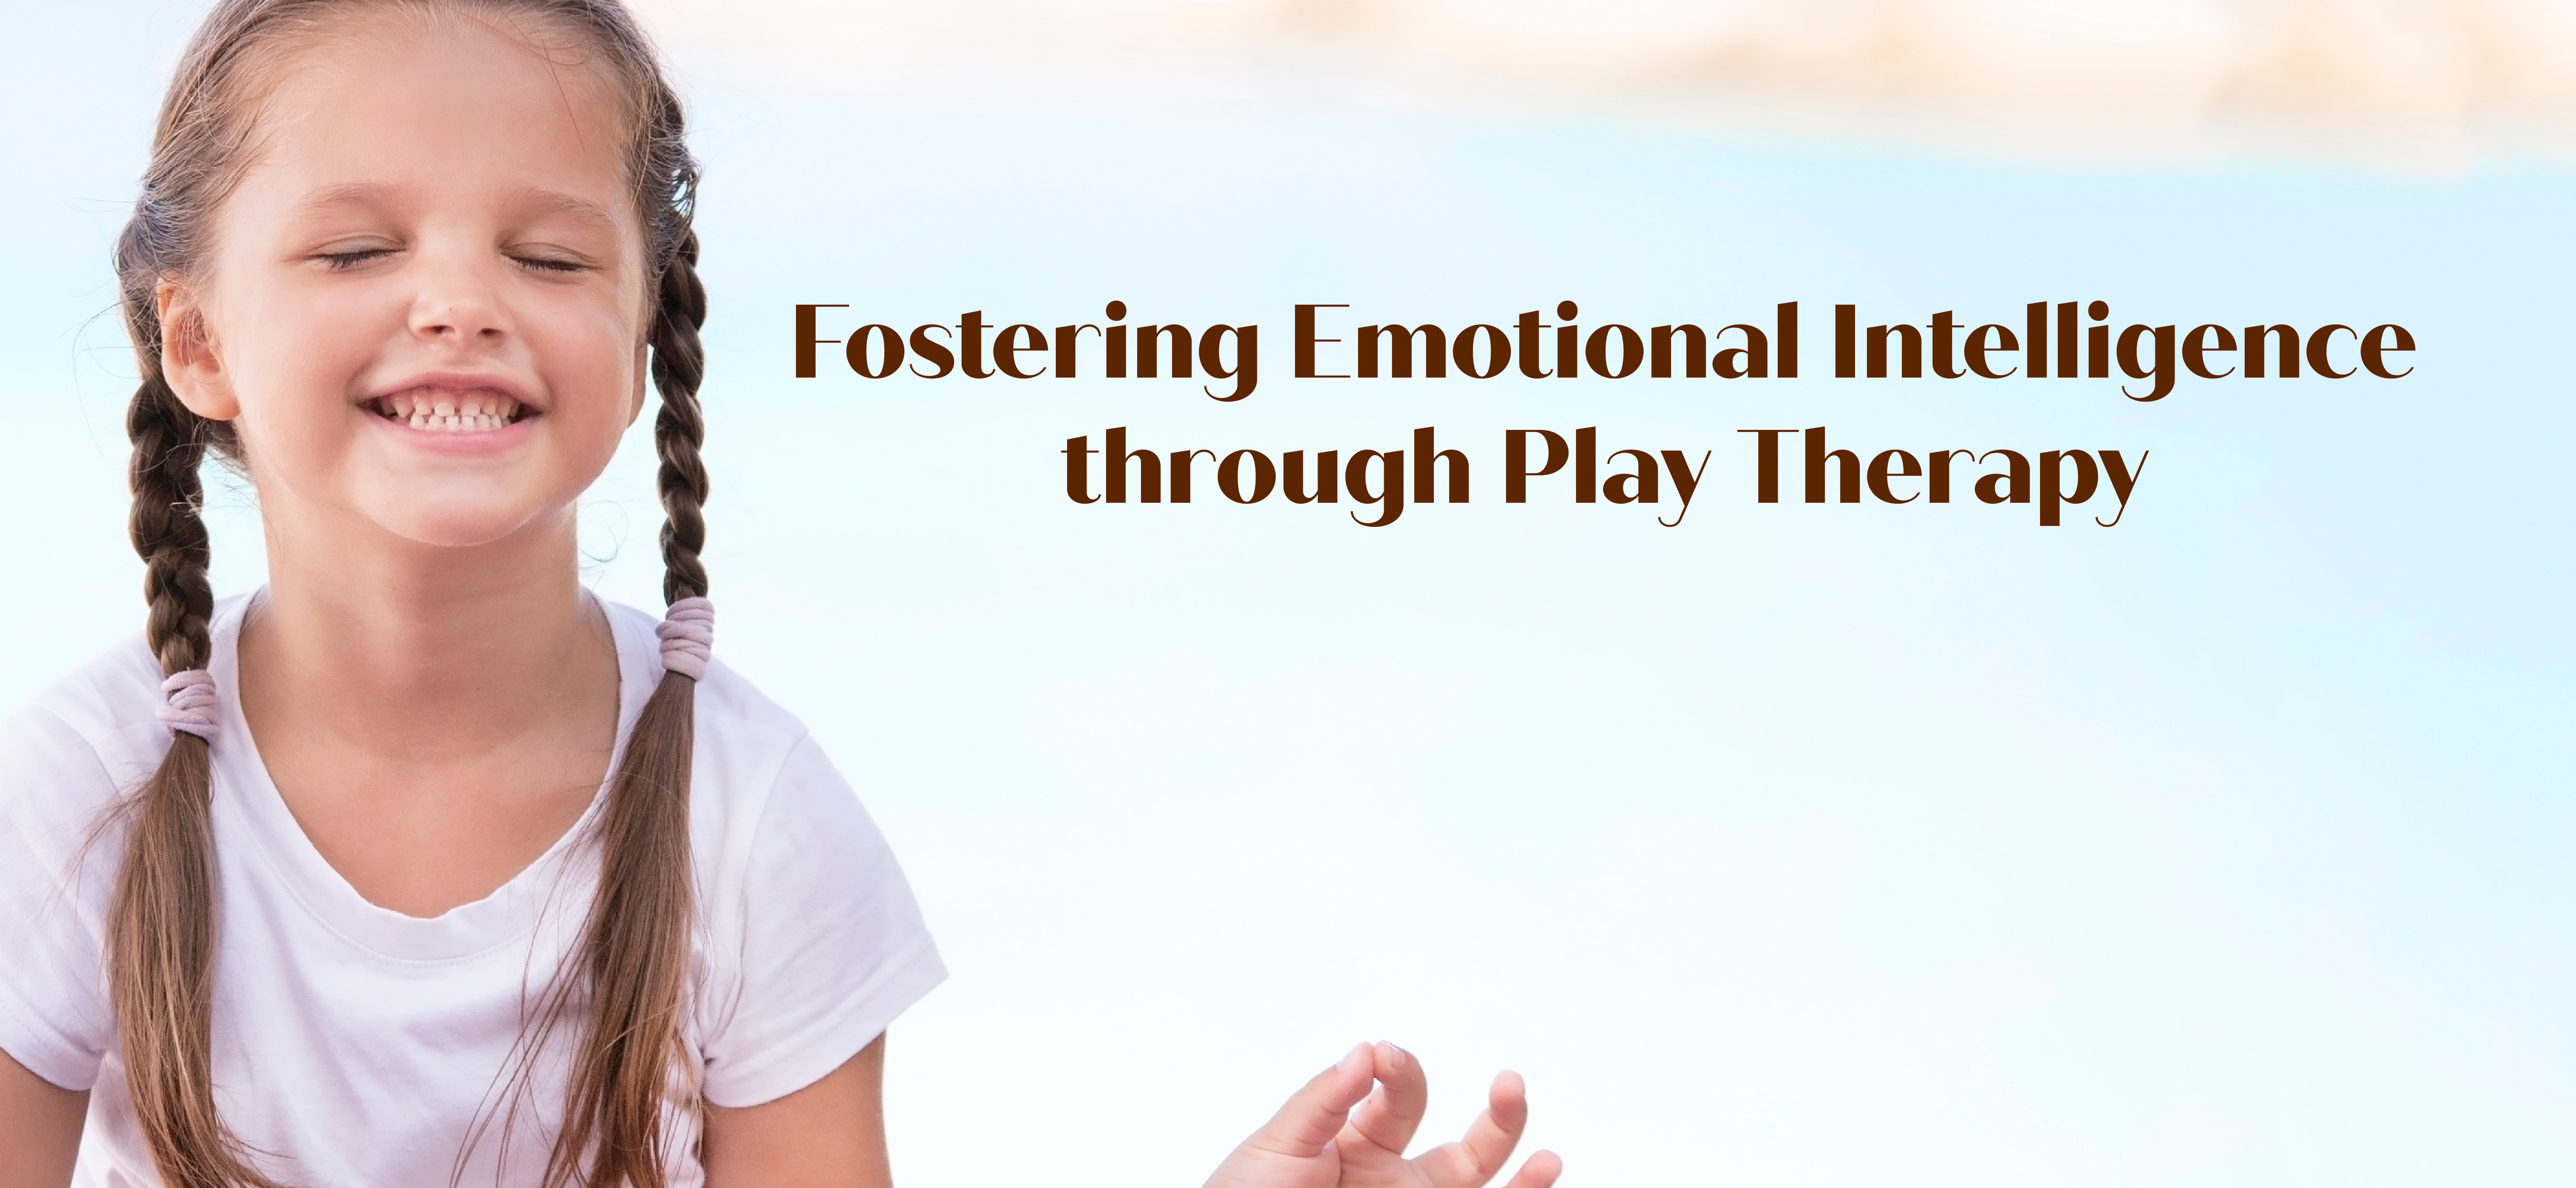 emotional intelligence and play therapy